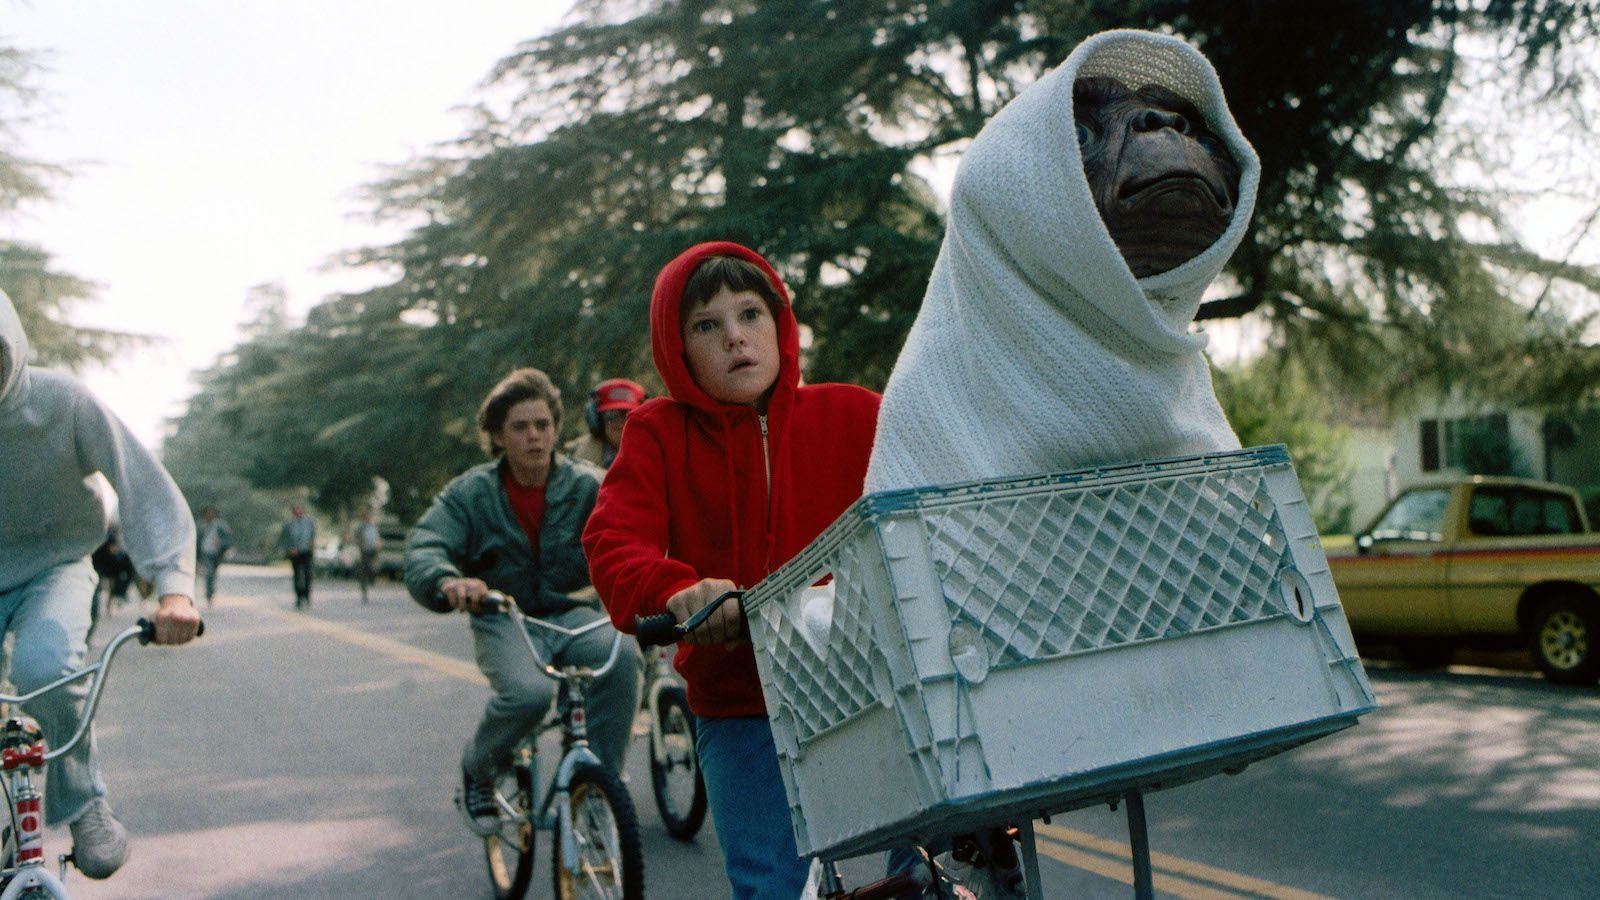 """FILE - This image released by Universal Pictures shows Henry Thomas as Elliott and E.T. in a basket on a bicycle in a scene from director Steven Spielberg's 1982 movie """"E.T.: The Extra-Terrestrial."""" As astronomers debate whether it would be a good idea to send signals into the universe to look for extra-terrestrial life, in science-fiction movies, aliens sometimes come in peace — and often do not. (AP Photo/Universal Pictures)"""